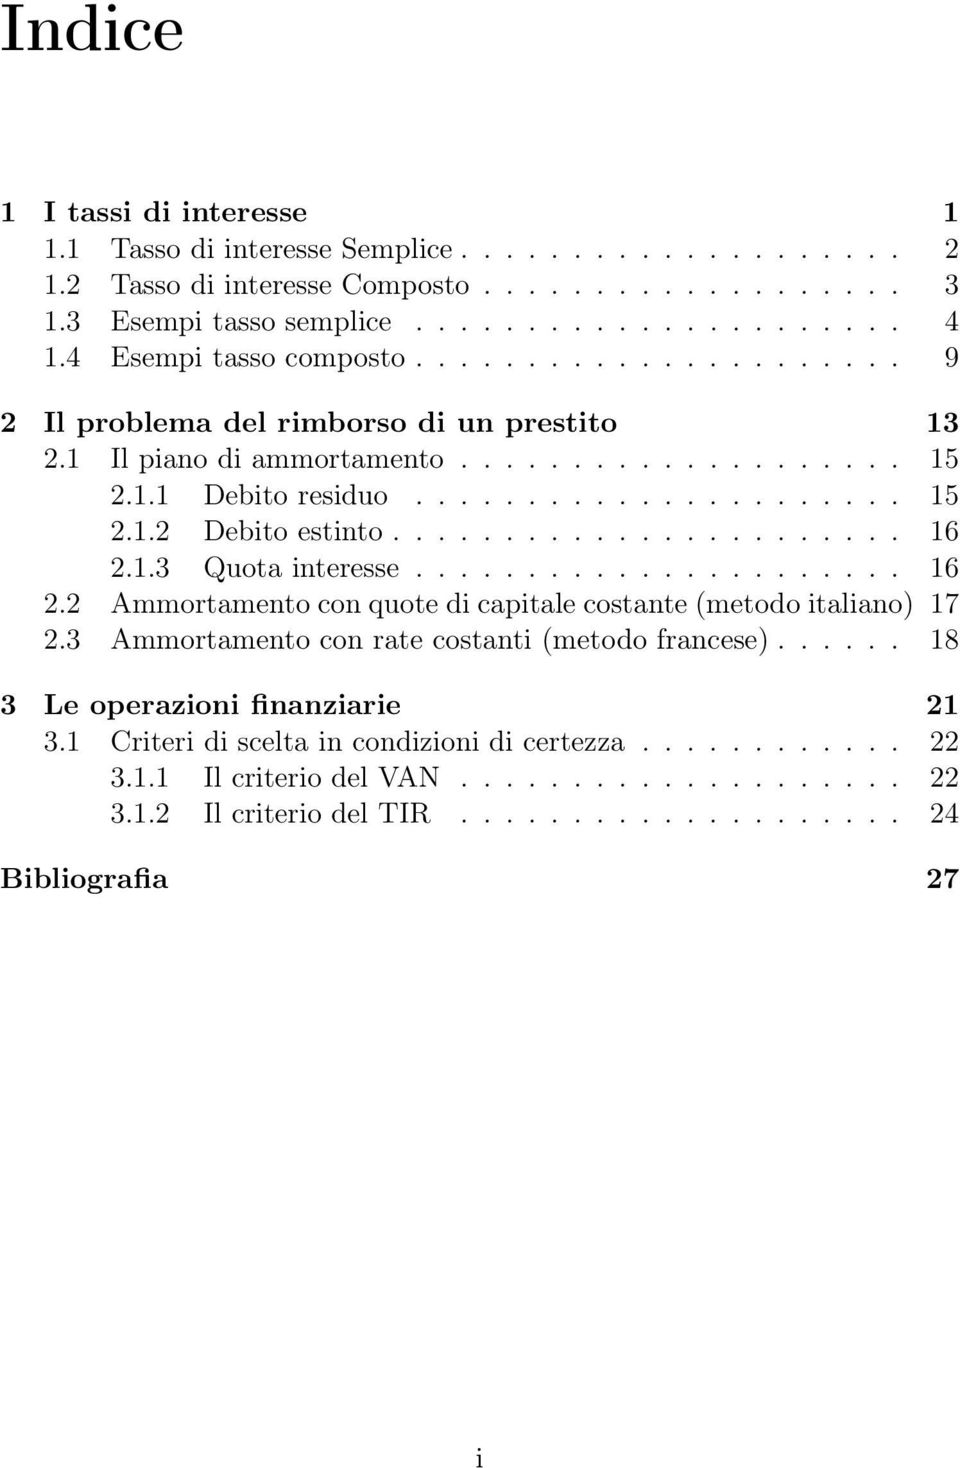 ...................... 16 2.1.3 Quota interesse...................... 16 2.2 Ammortamento con quote di capitale costante (metodo italiano) 17 2.3 Ammortamento con rate costanti (metodo francese).